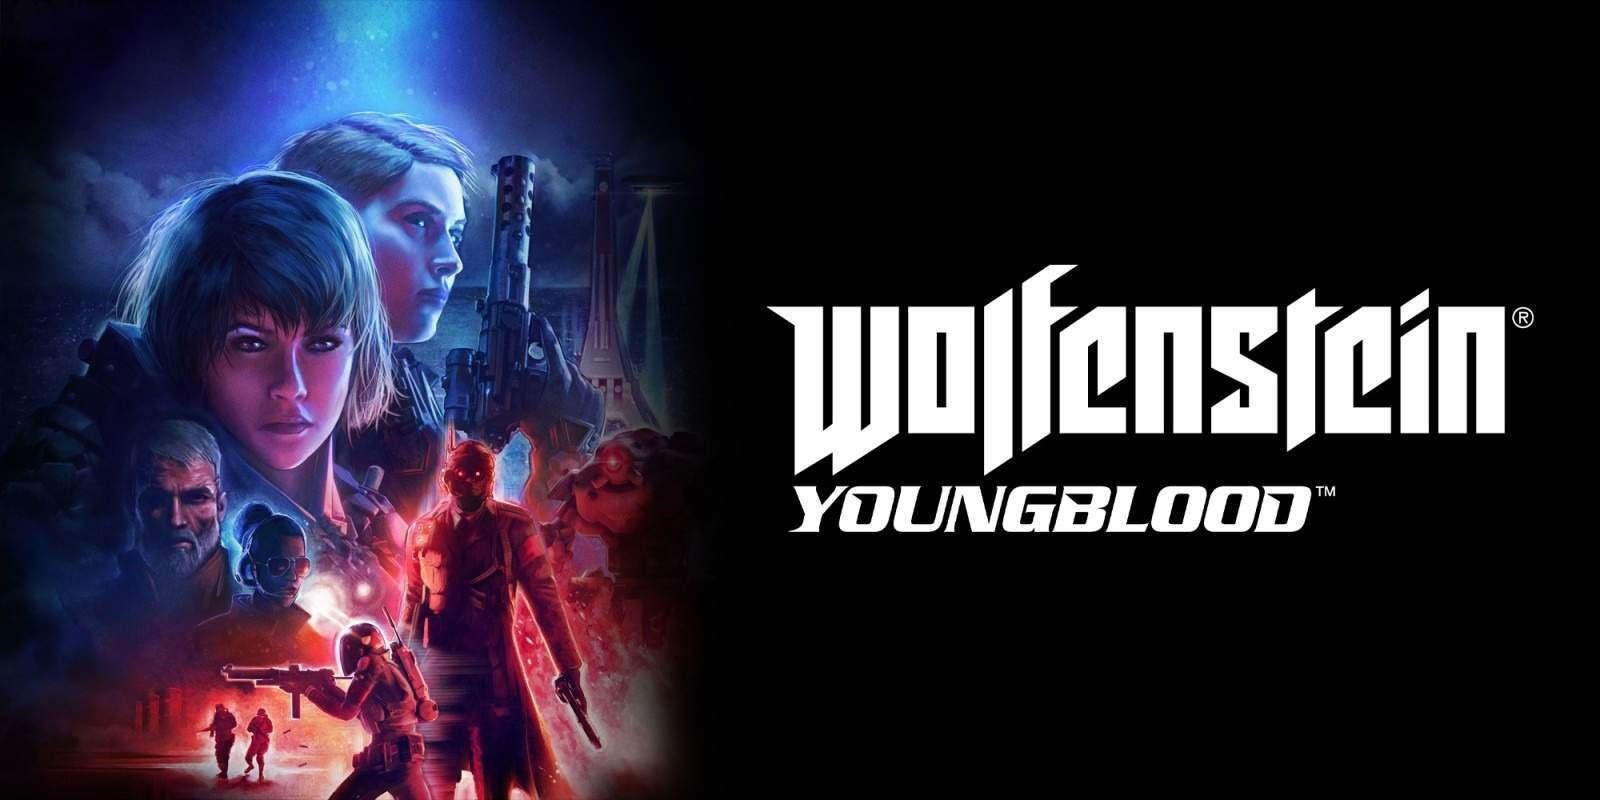 Reseña del juego Wolfenstein Youngblood